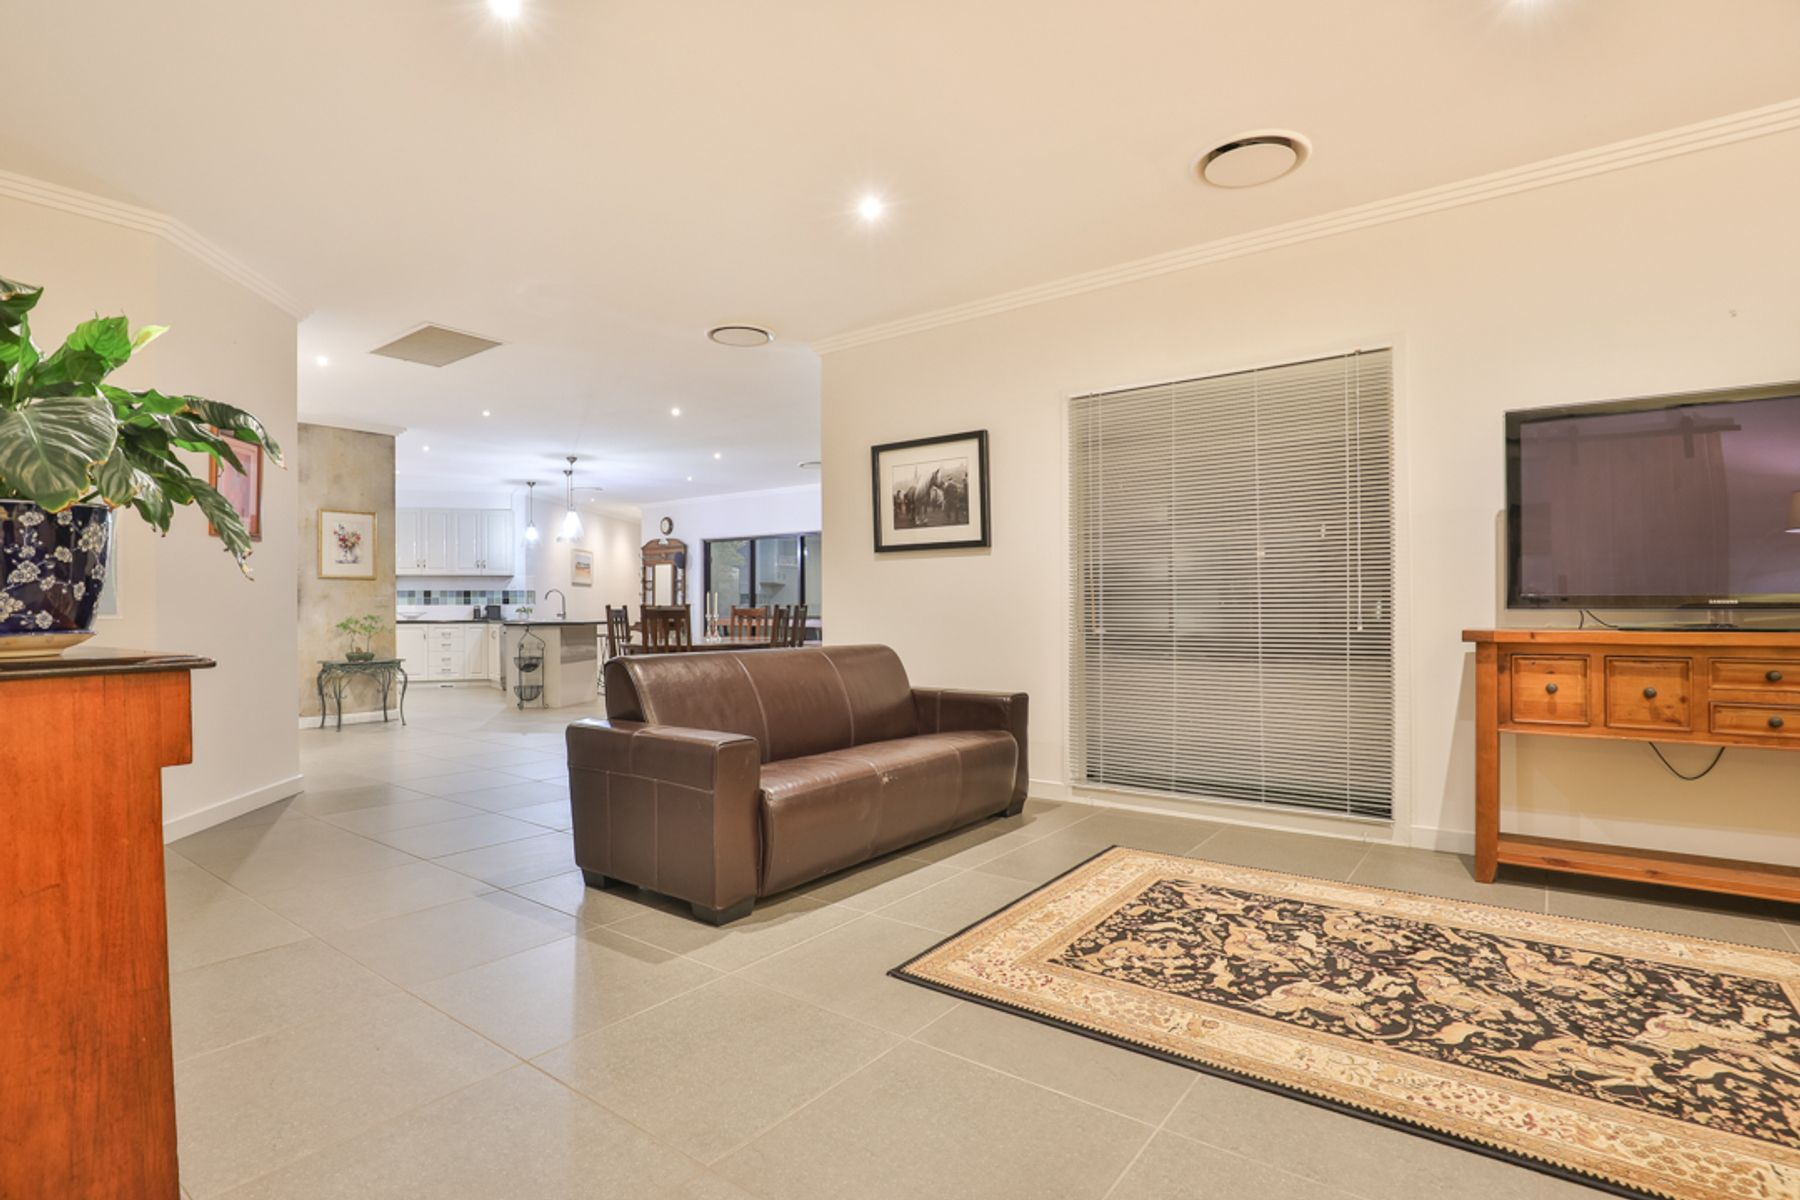 3 Peter-John Court, Mildura, VIC 3500